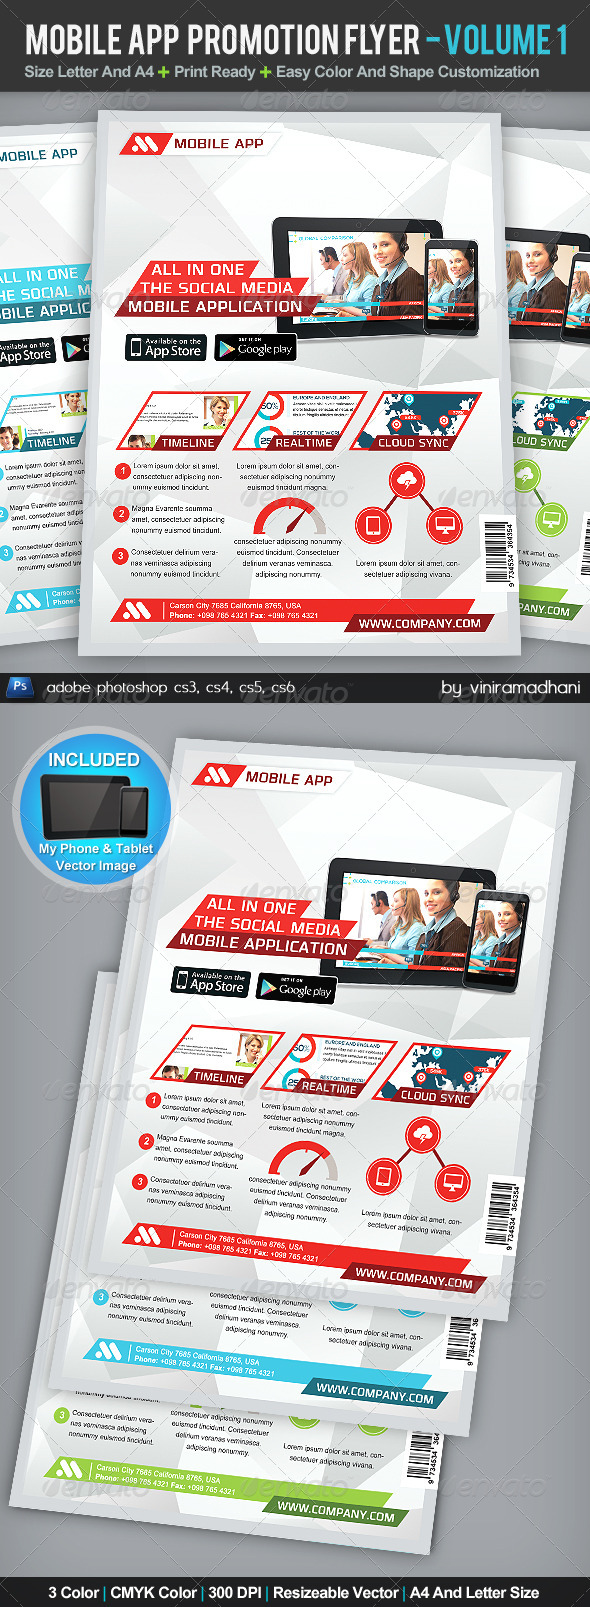 GraphicRiver Mobile App Promotion Flyer Volume 1 5207371